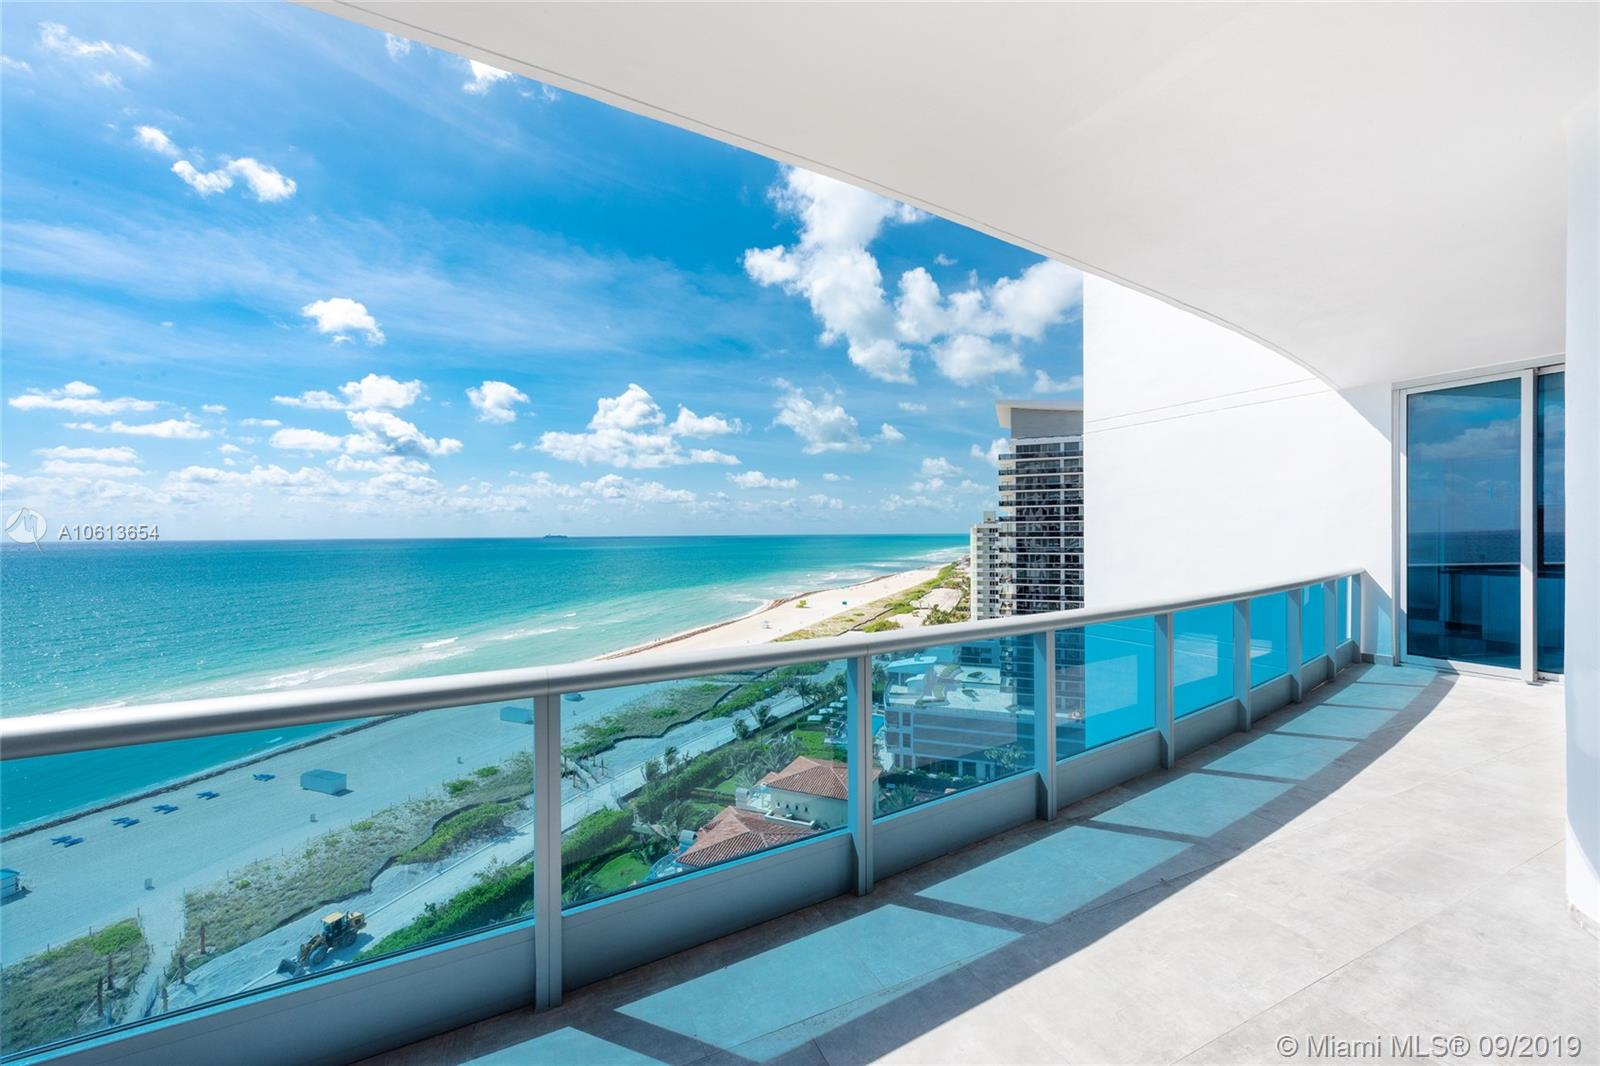 Spectacular direct oceanfront unit at the luxury Bath Club. The sleek and chic unit features 3,807 SF of luxury with white Italian porcelain floors throughout and two sweeping terraces with unobstructed sunrise views to the beach & Atlantic Ocean as well as city, bay and Downtown Miami sunset views. Offers an expansive open living, dining and family/media room layout all with amazing ocean views & an Oceanside gourmet kitchen with top of the line appliances. The private & elegant oceanfront principal suite features separate dual walk-in closets, and principal bath w/ glass rain shower & Jacuzzi spa bath. The other 3 bedrooms are each spacious with en-suite baths and includes a larger guest suite. 5-Star Bath Club amenities complete this amazing offering.